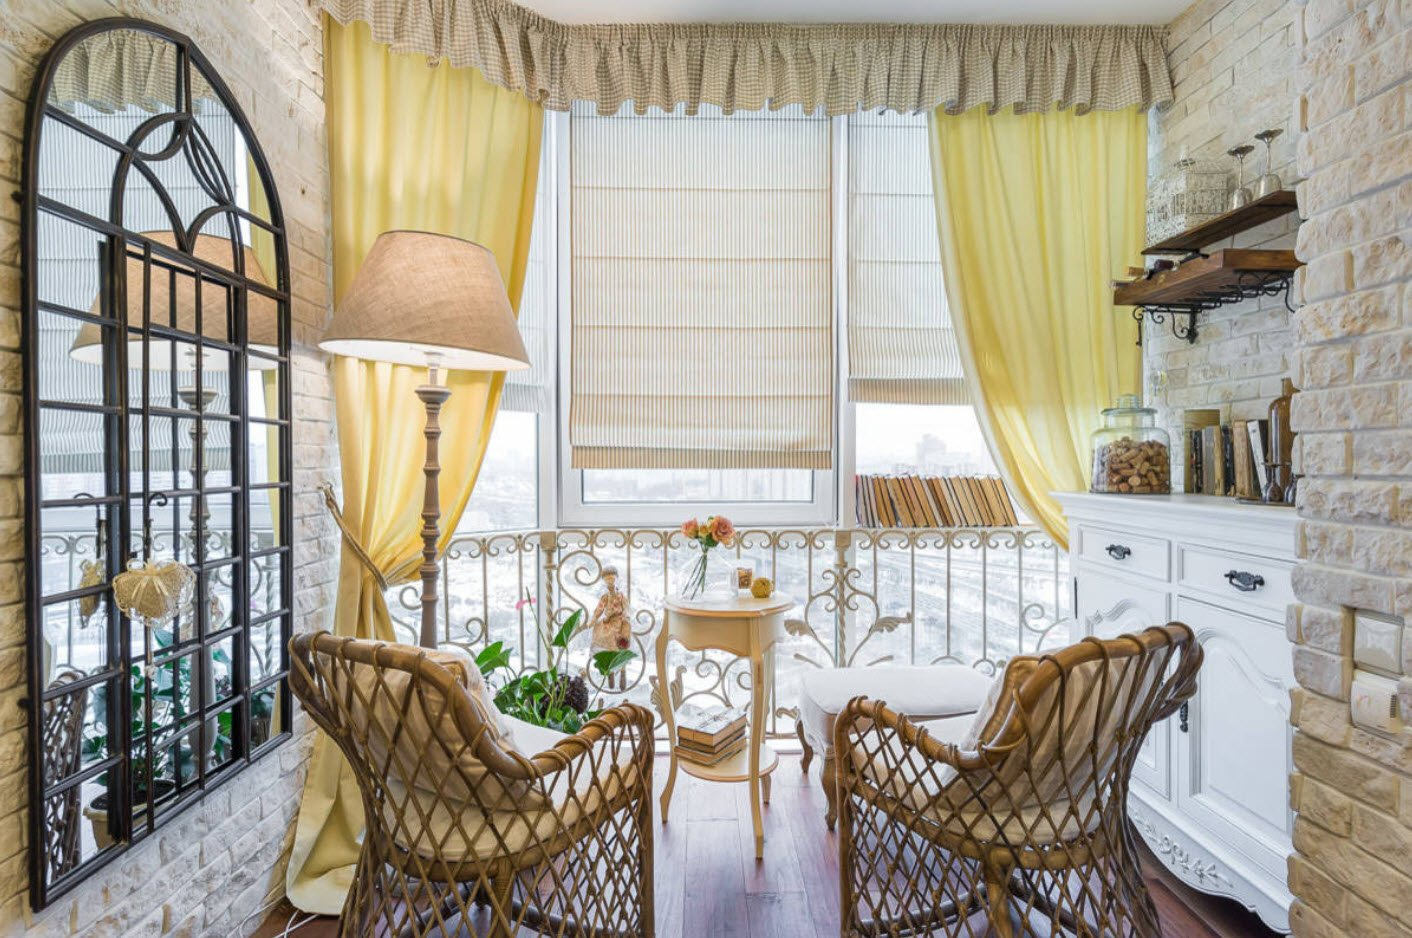 Balcony Curtains: Actual and Fashionable Decoration Ideas. Classic idyll with wicker furniture